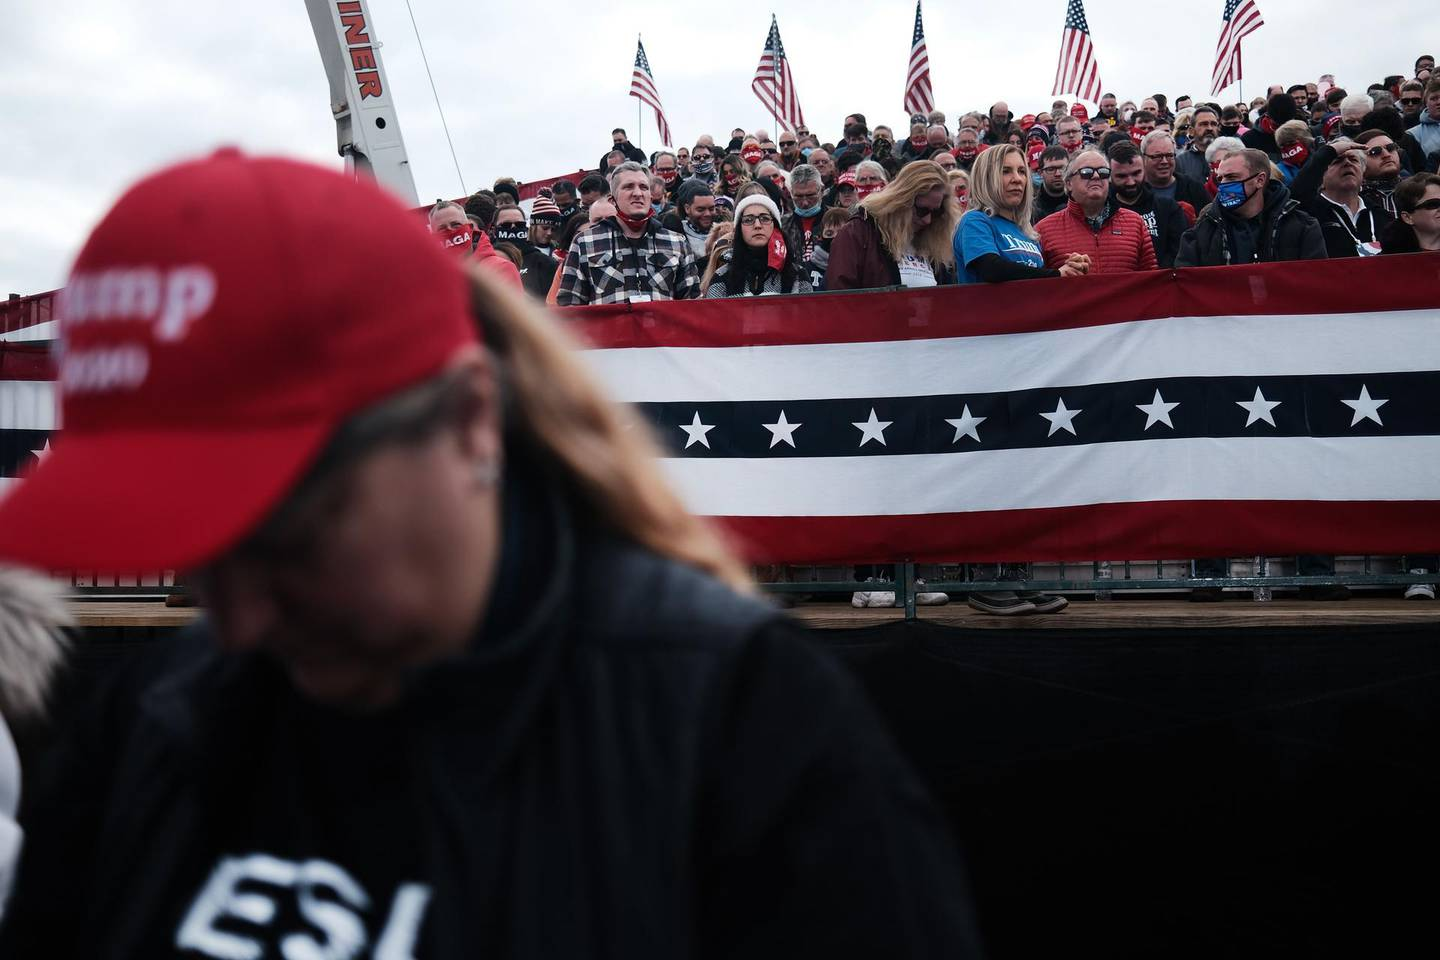 READING, PENNSYLVANIA - OCTOBER 31: Supporters of President Donald Trump arrive to a rally on October 31, 2020 in Reading, Pennsylvania. Donald Trump is crossing the crucial state of Pennsylvania in the last few days of campaigning before Americans goes to the polls on November 3rd to vote. Trump is currently trailing his opponent Joe Biden in most national polls.   Spencer Platt/Getty Images/AFP == FOR NEWSPAPERS, INTERNET, TELCOS & TELEVISION USE ONLY ==